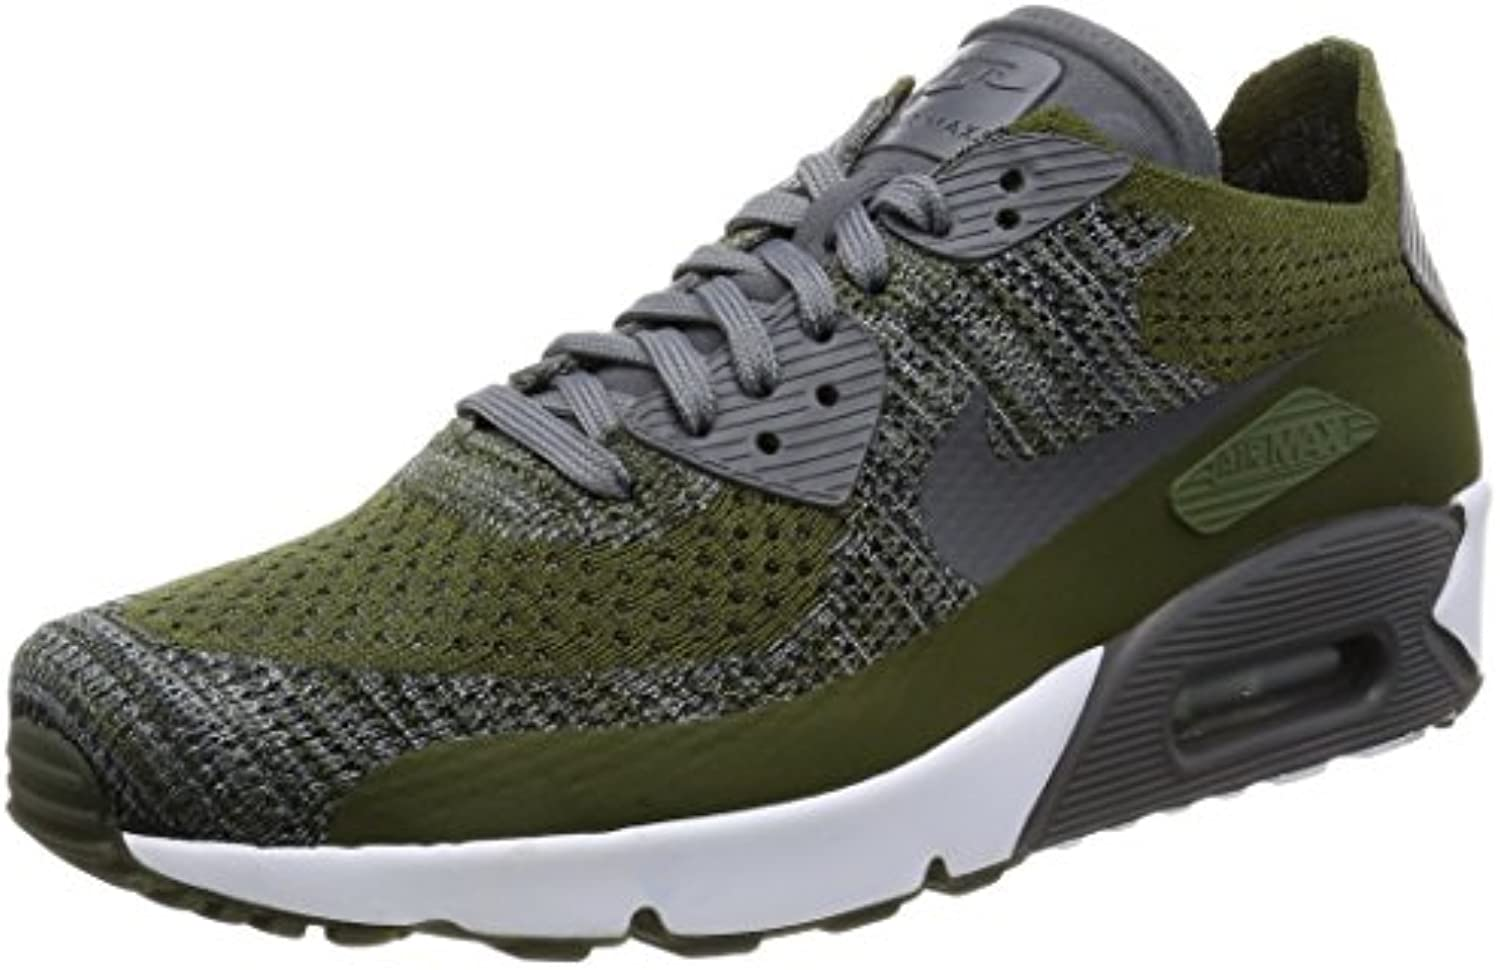 Nike Hombre Air MAX 90 Ultra 2.0 Flyknit - Gruesos Verde/Oscuro Gris Blanco, 41